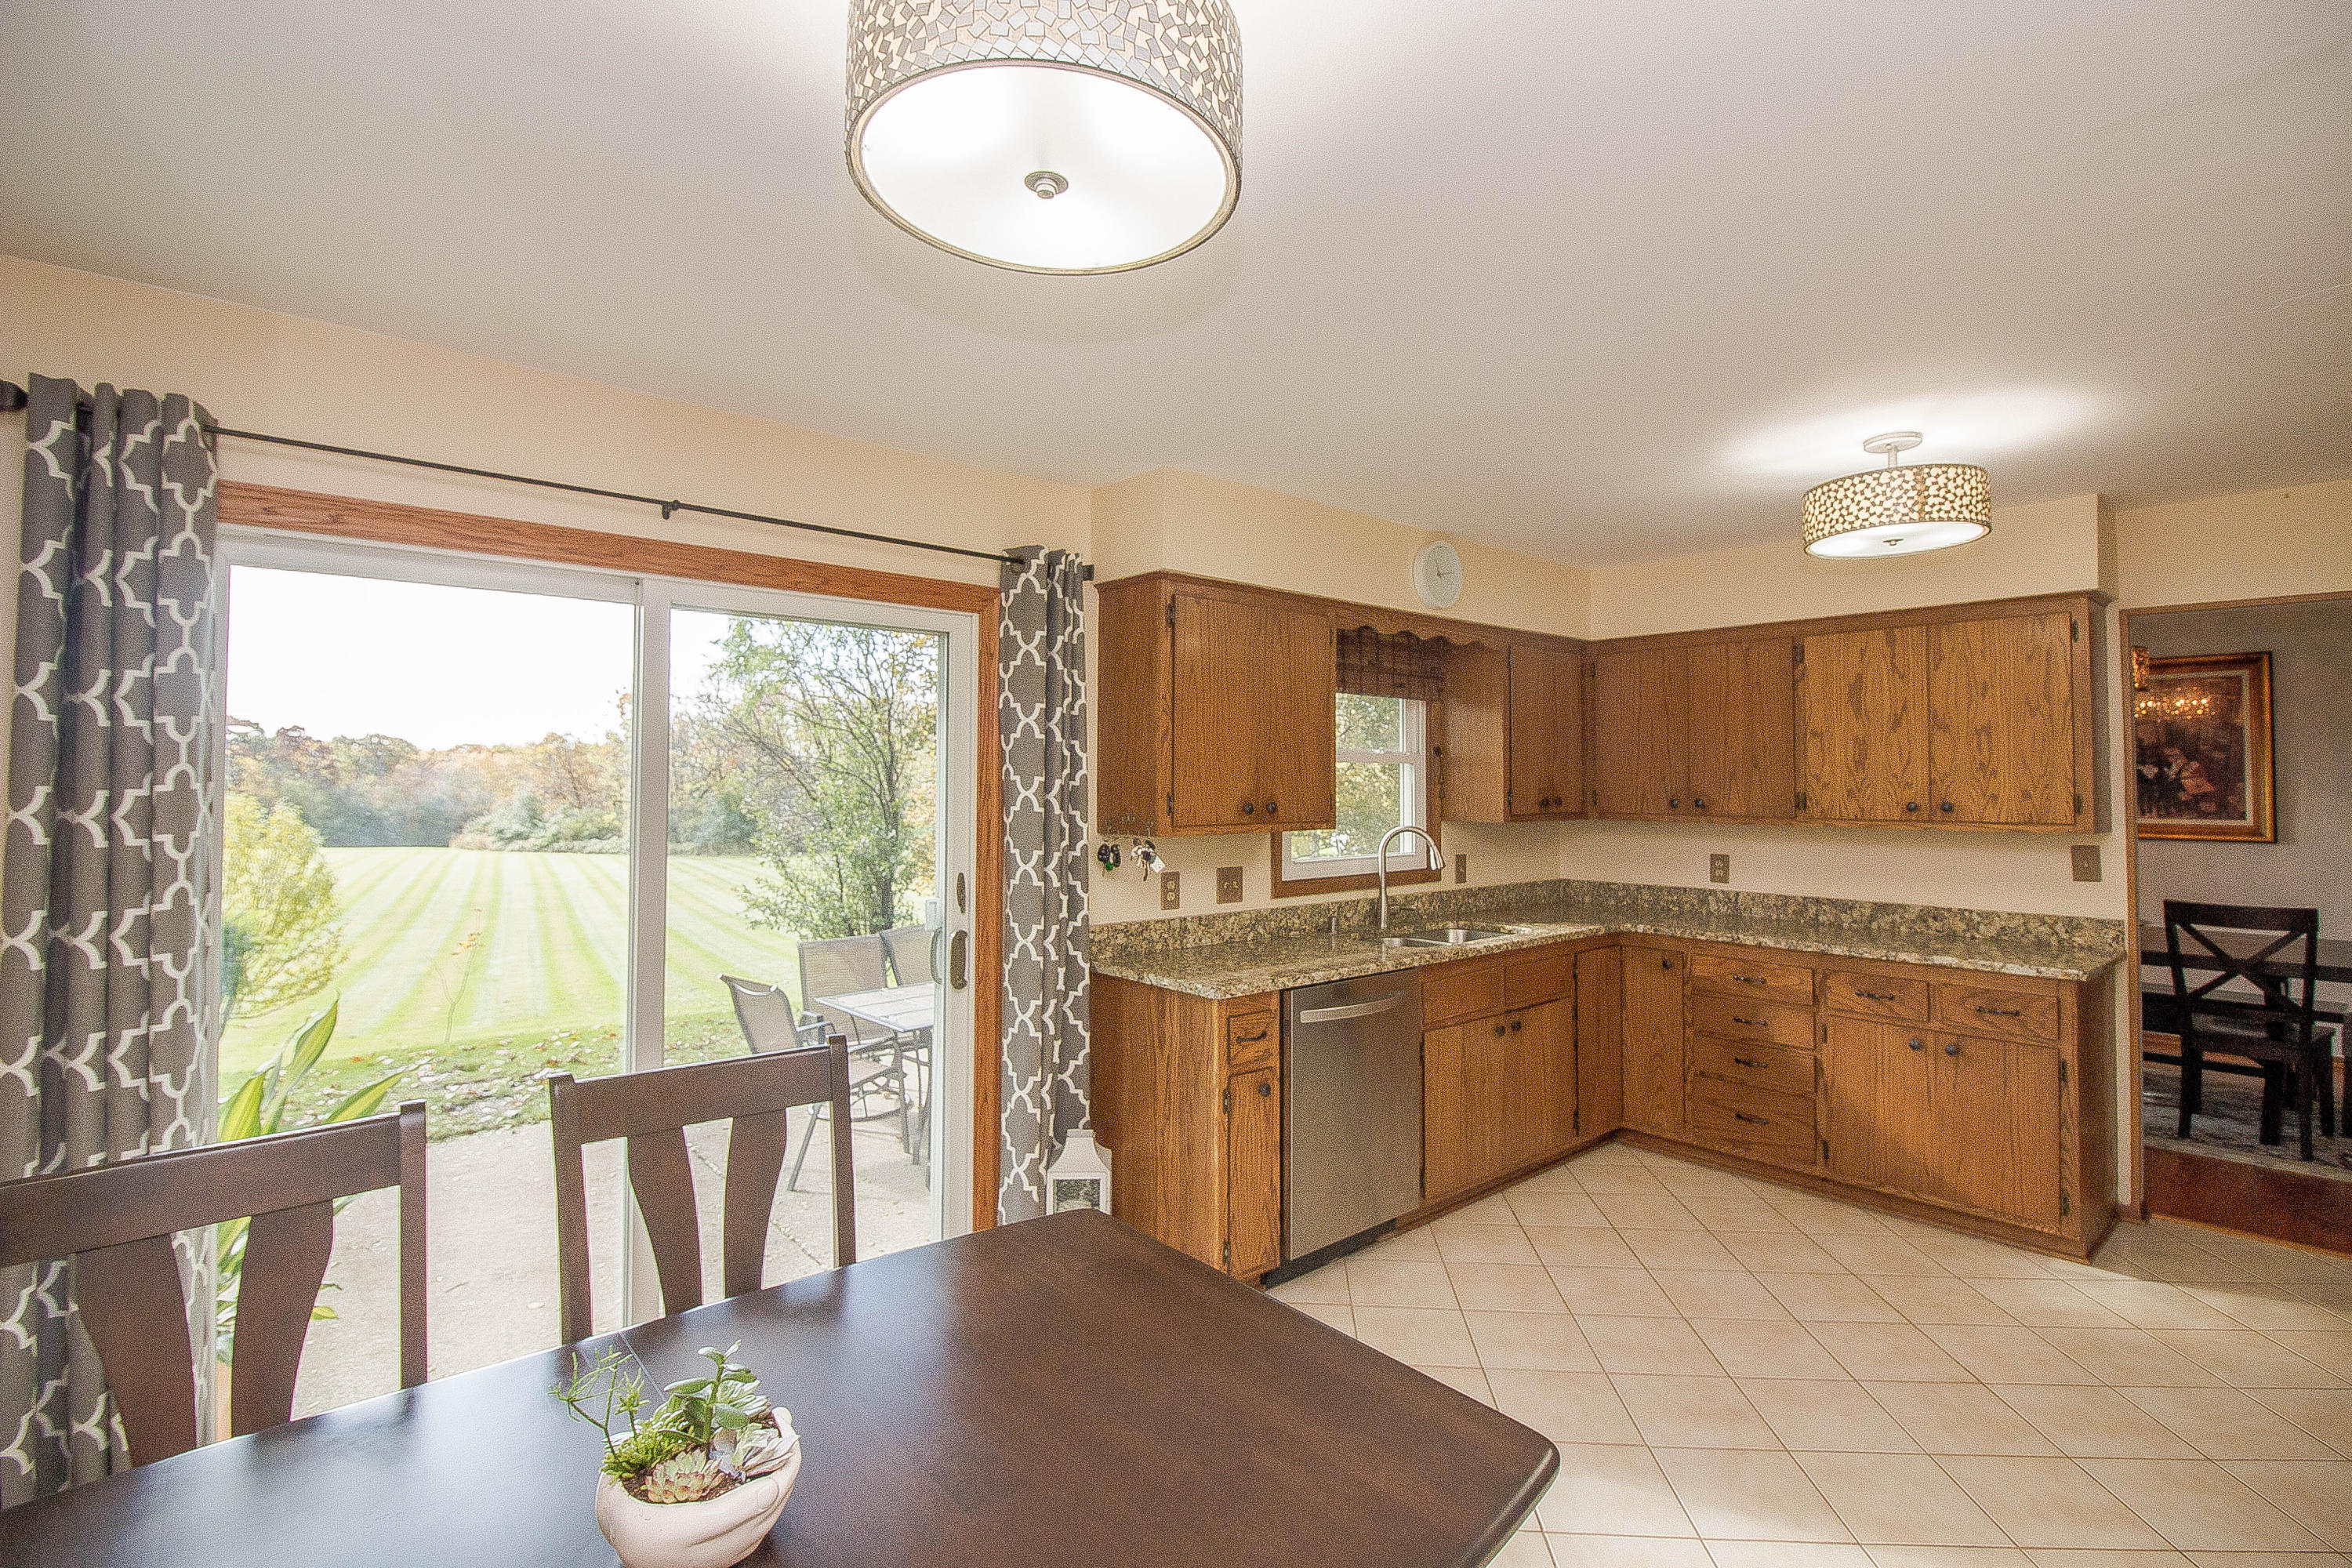 2704 Coventry Ln, Waukesha, Wisconsin 53188, 3 Bedrooms Bedrooms, ,2 BathroomsBathrooms,Single-Family,For Sale,Coventry Ln,1666211